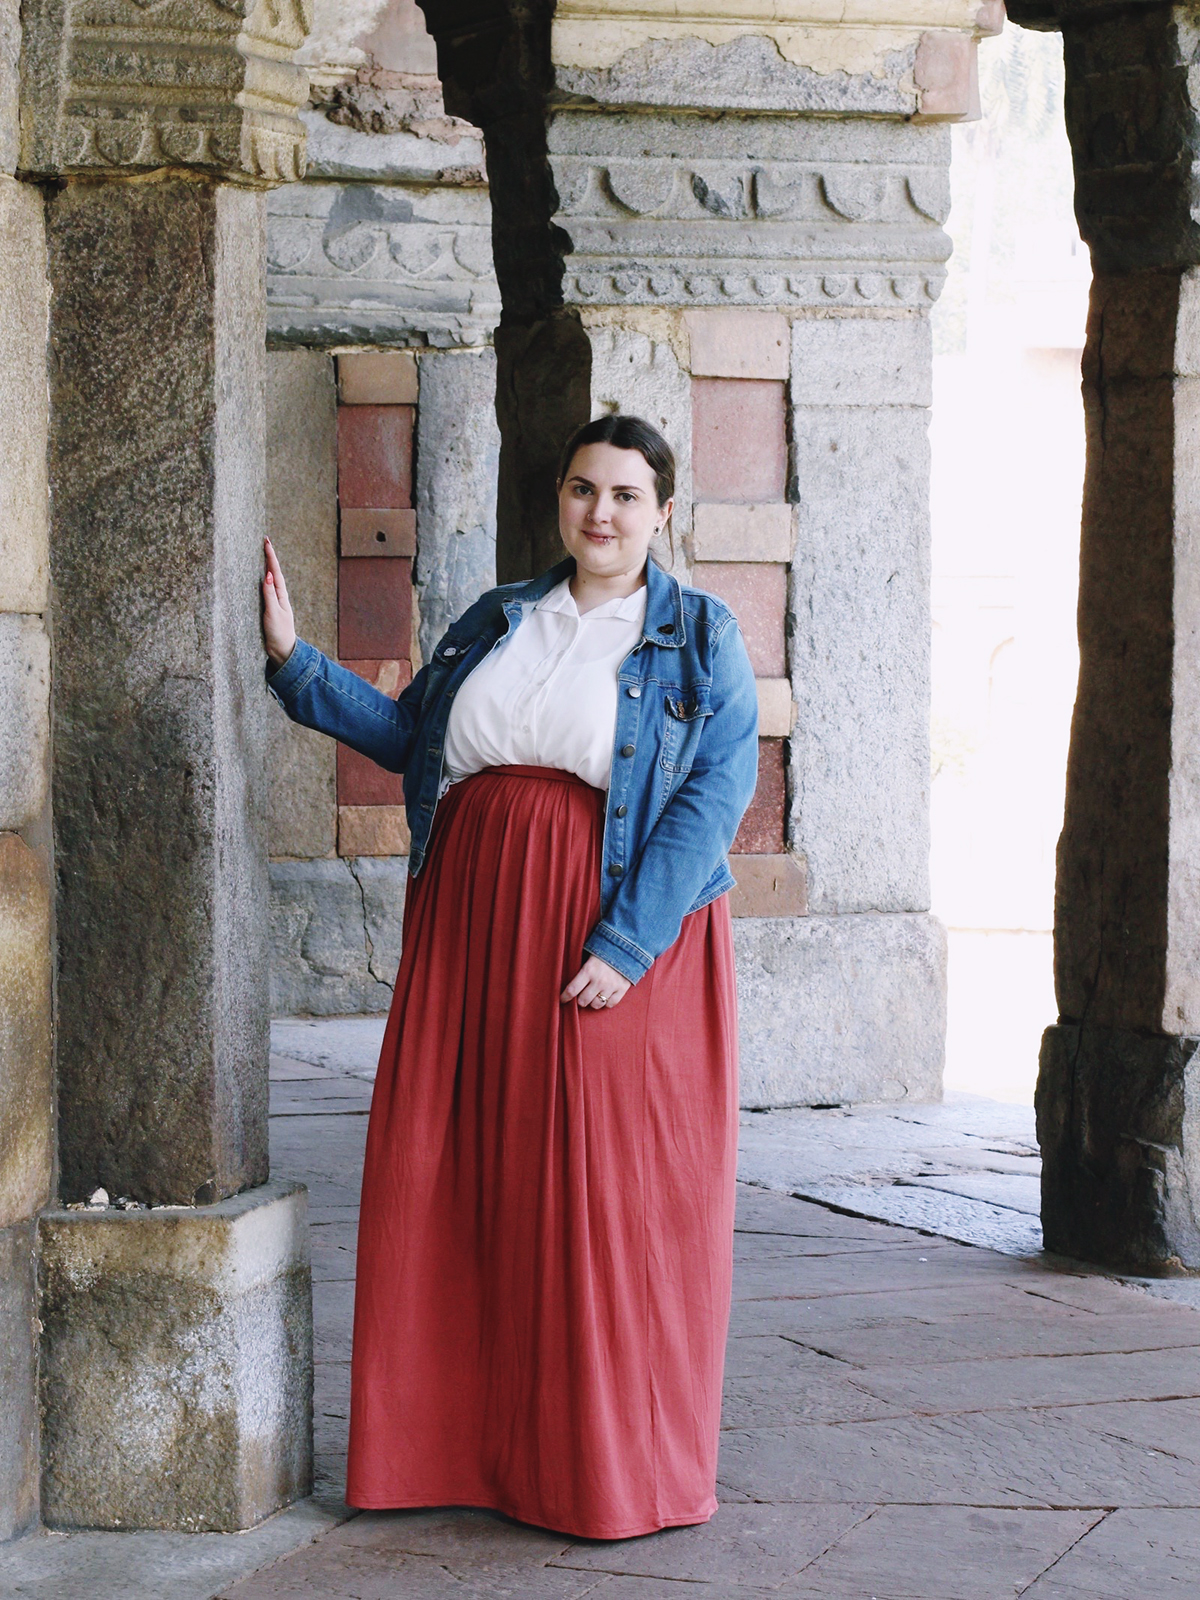 plus size women's outfit for India- blue denim jacket, white blouse and terracotta maxi skirt